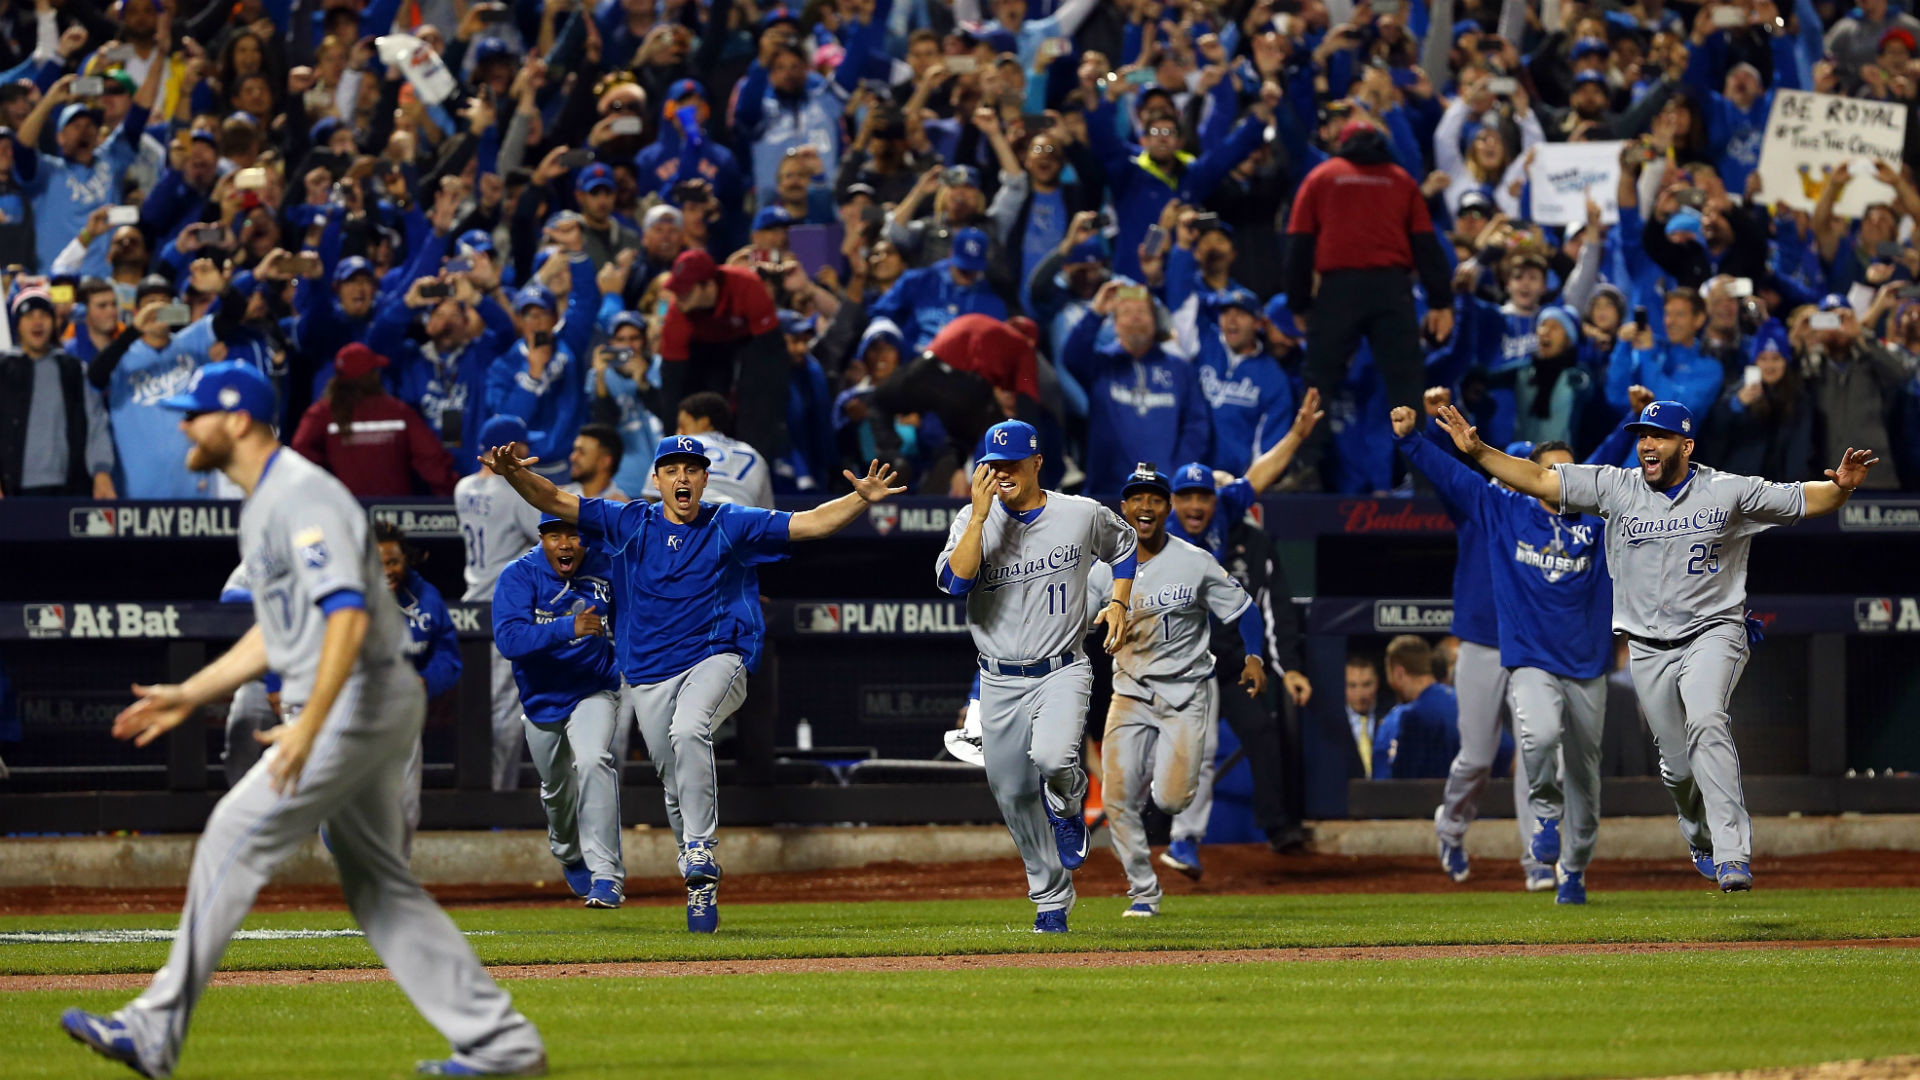 1920x1080 #Crowned: the Royals' World Series Victory in Memes | MazumafyKC